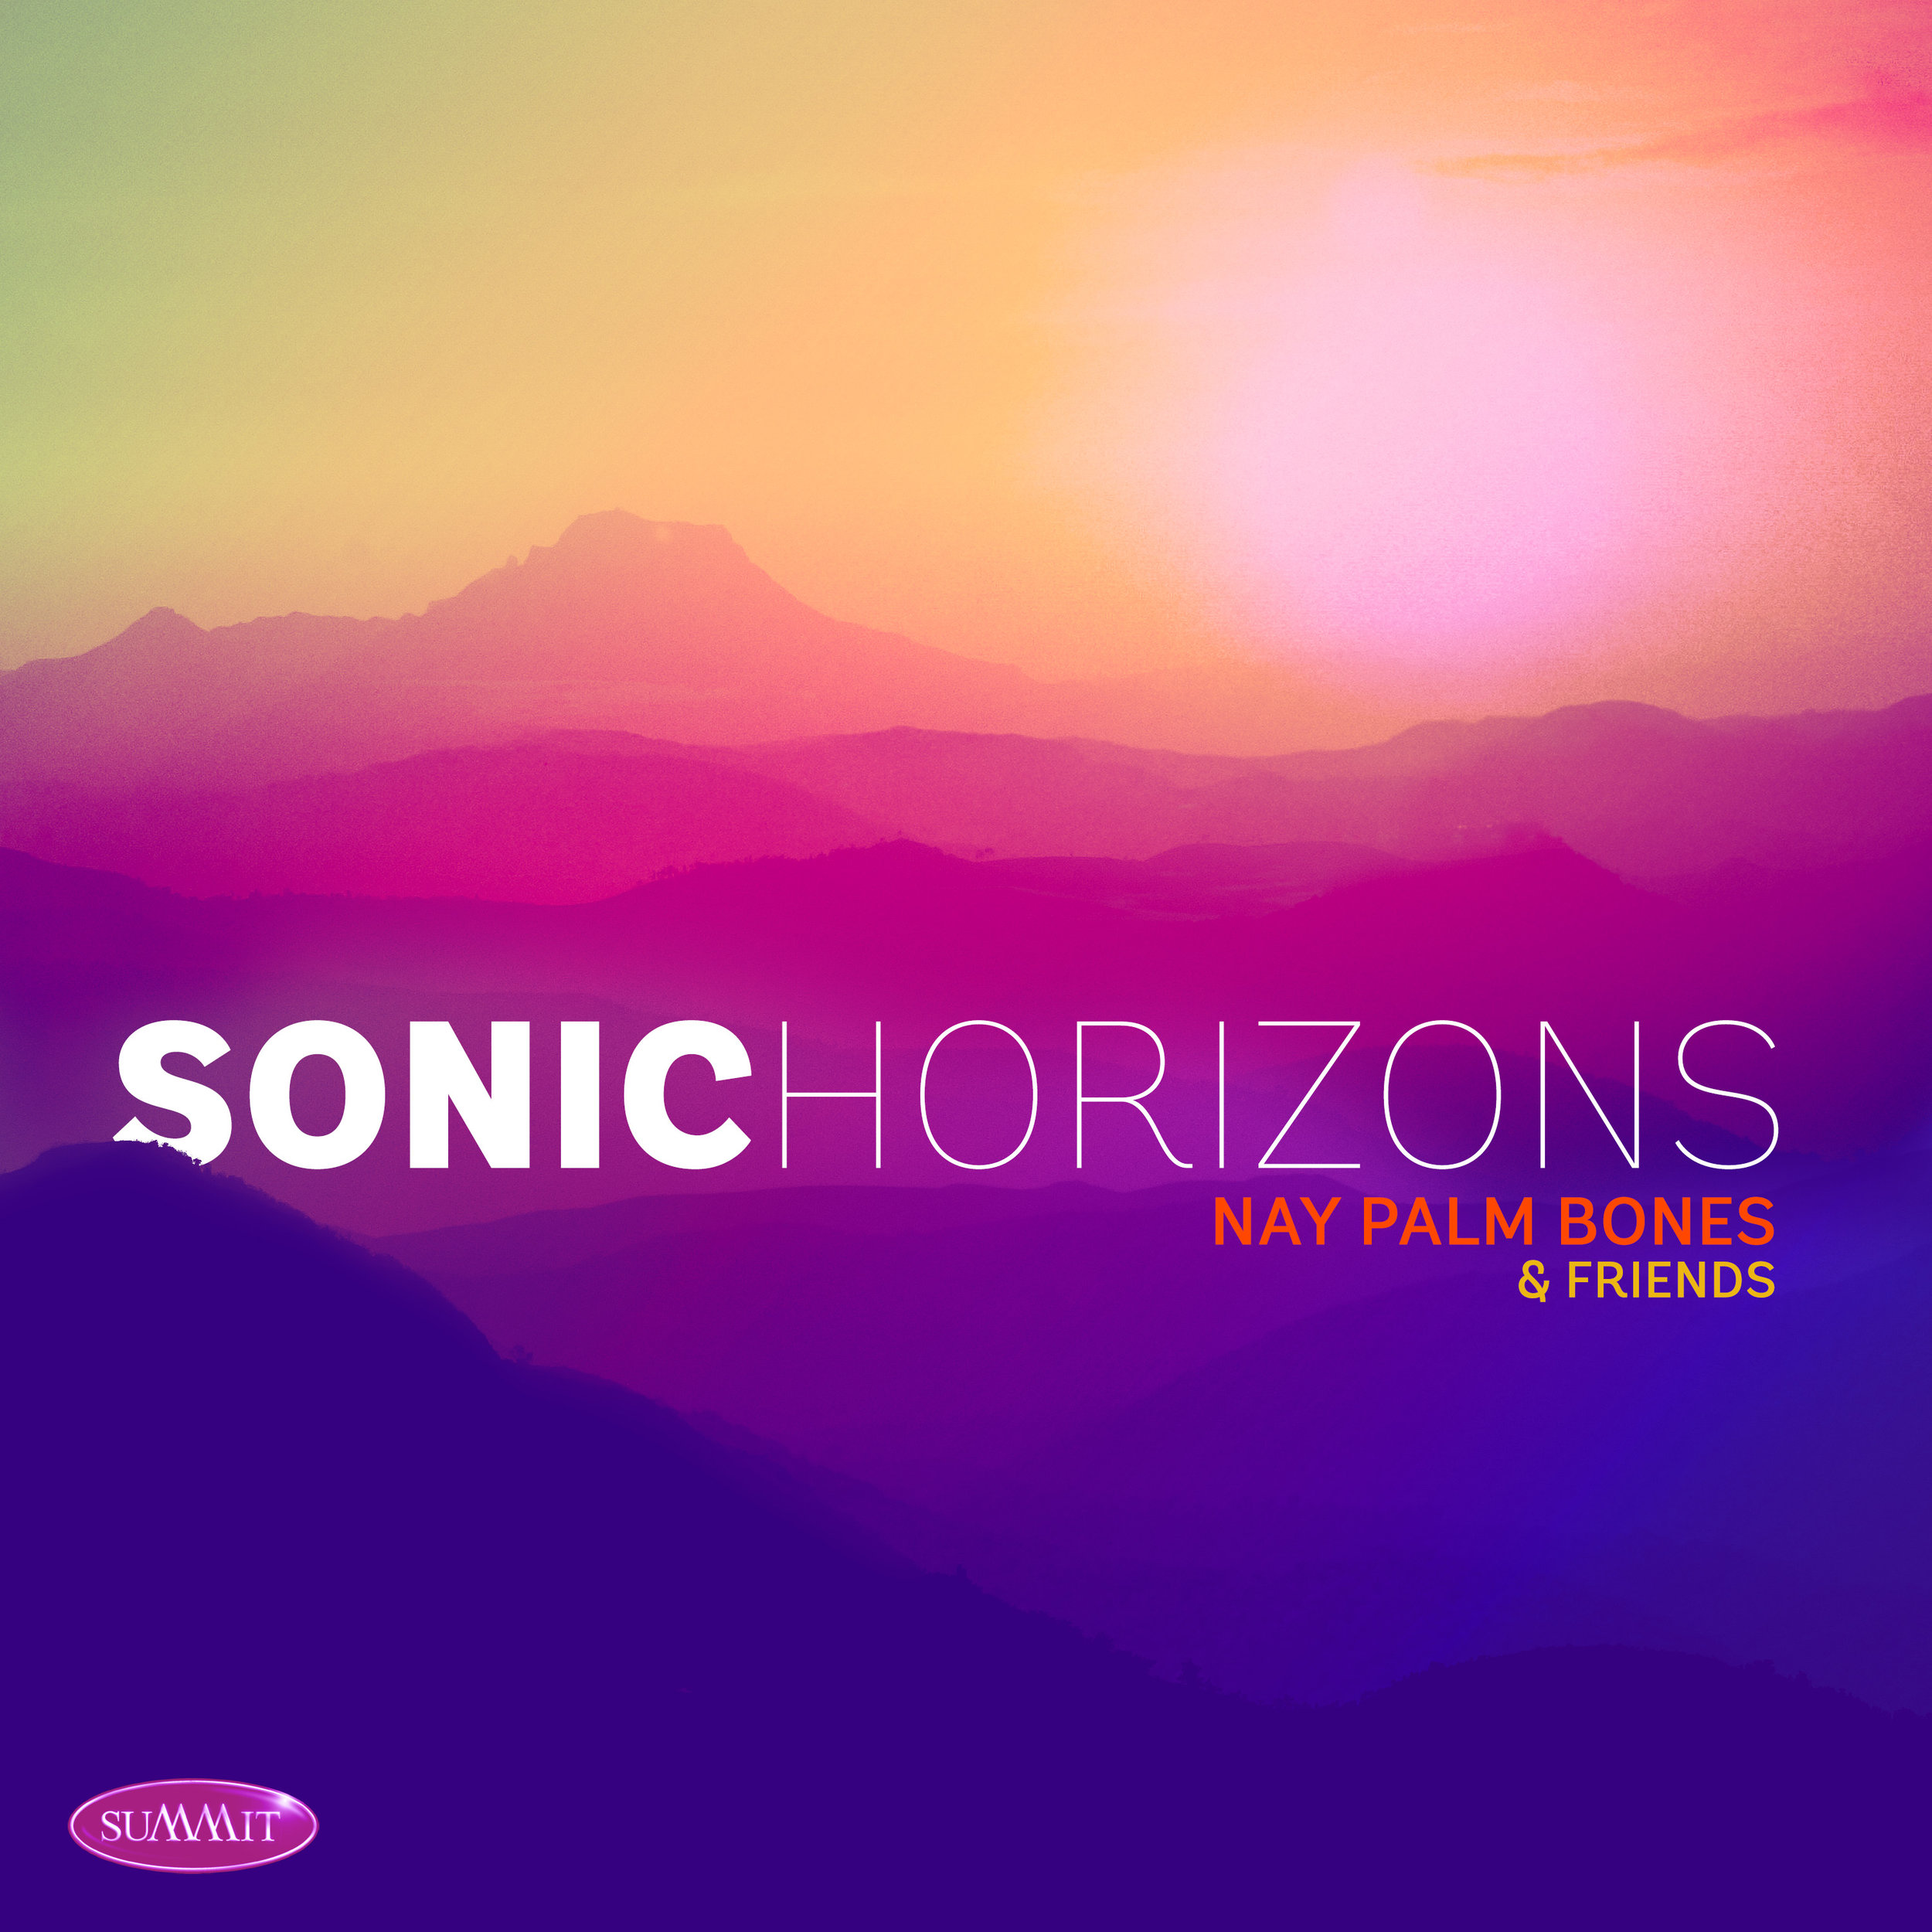 Sonic Horizons - Nay Palm Bones  - 2018  Summit Records (DCD 729)